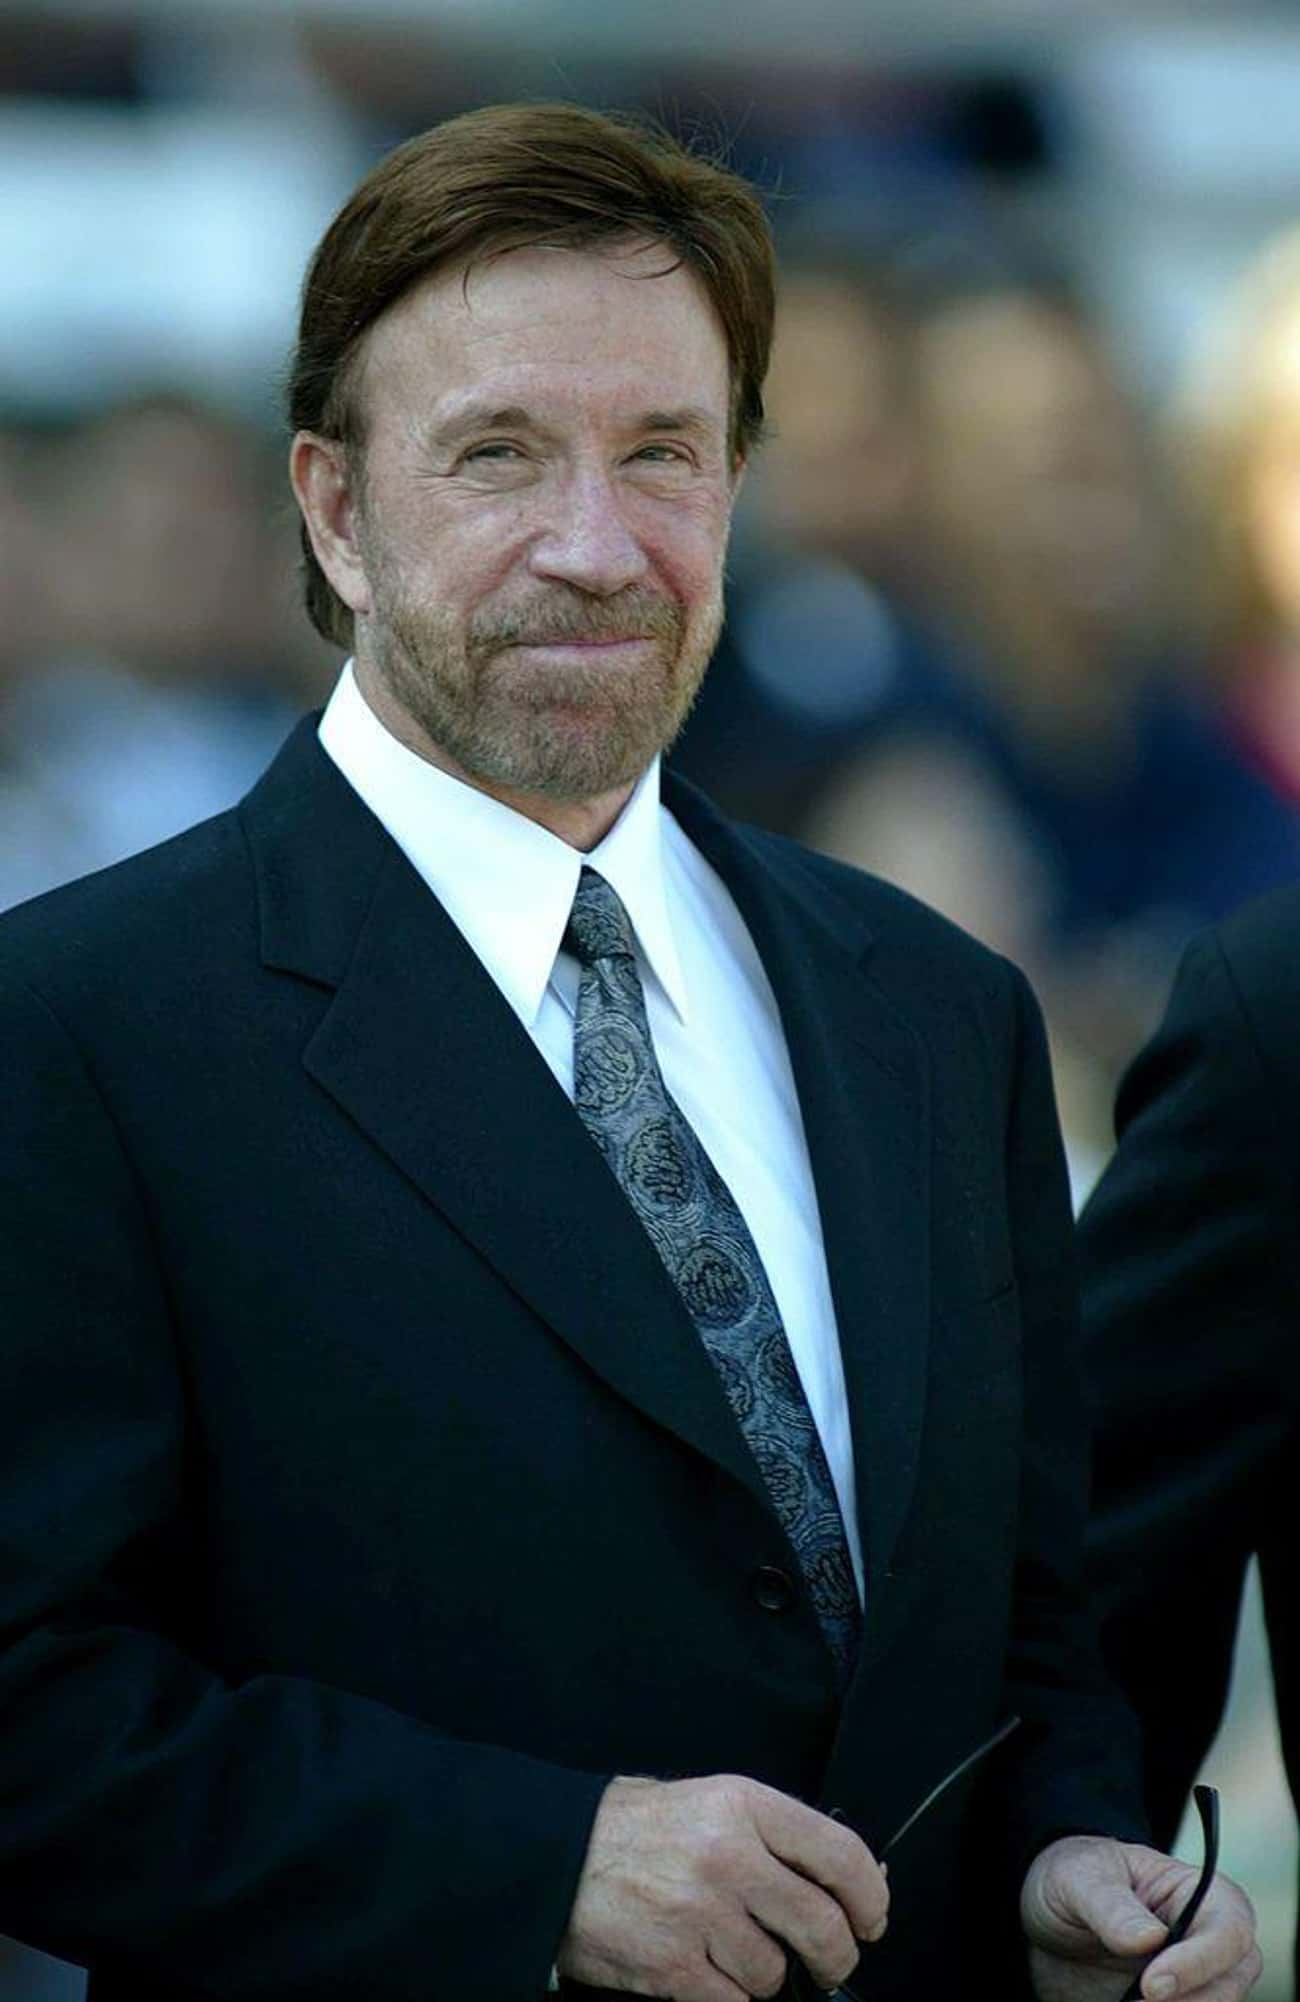 Chuck Norris is listed (or ranked) 2 on the list 30+ Celebrities Who Are Born-Again Christians